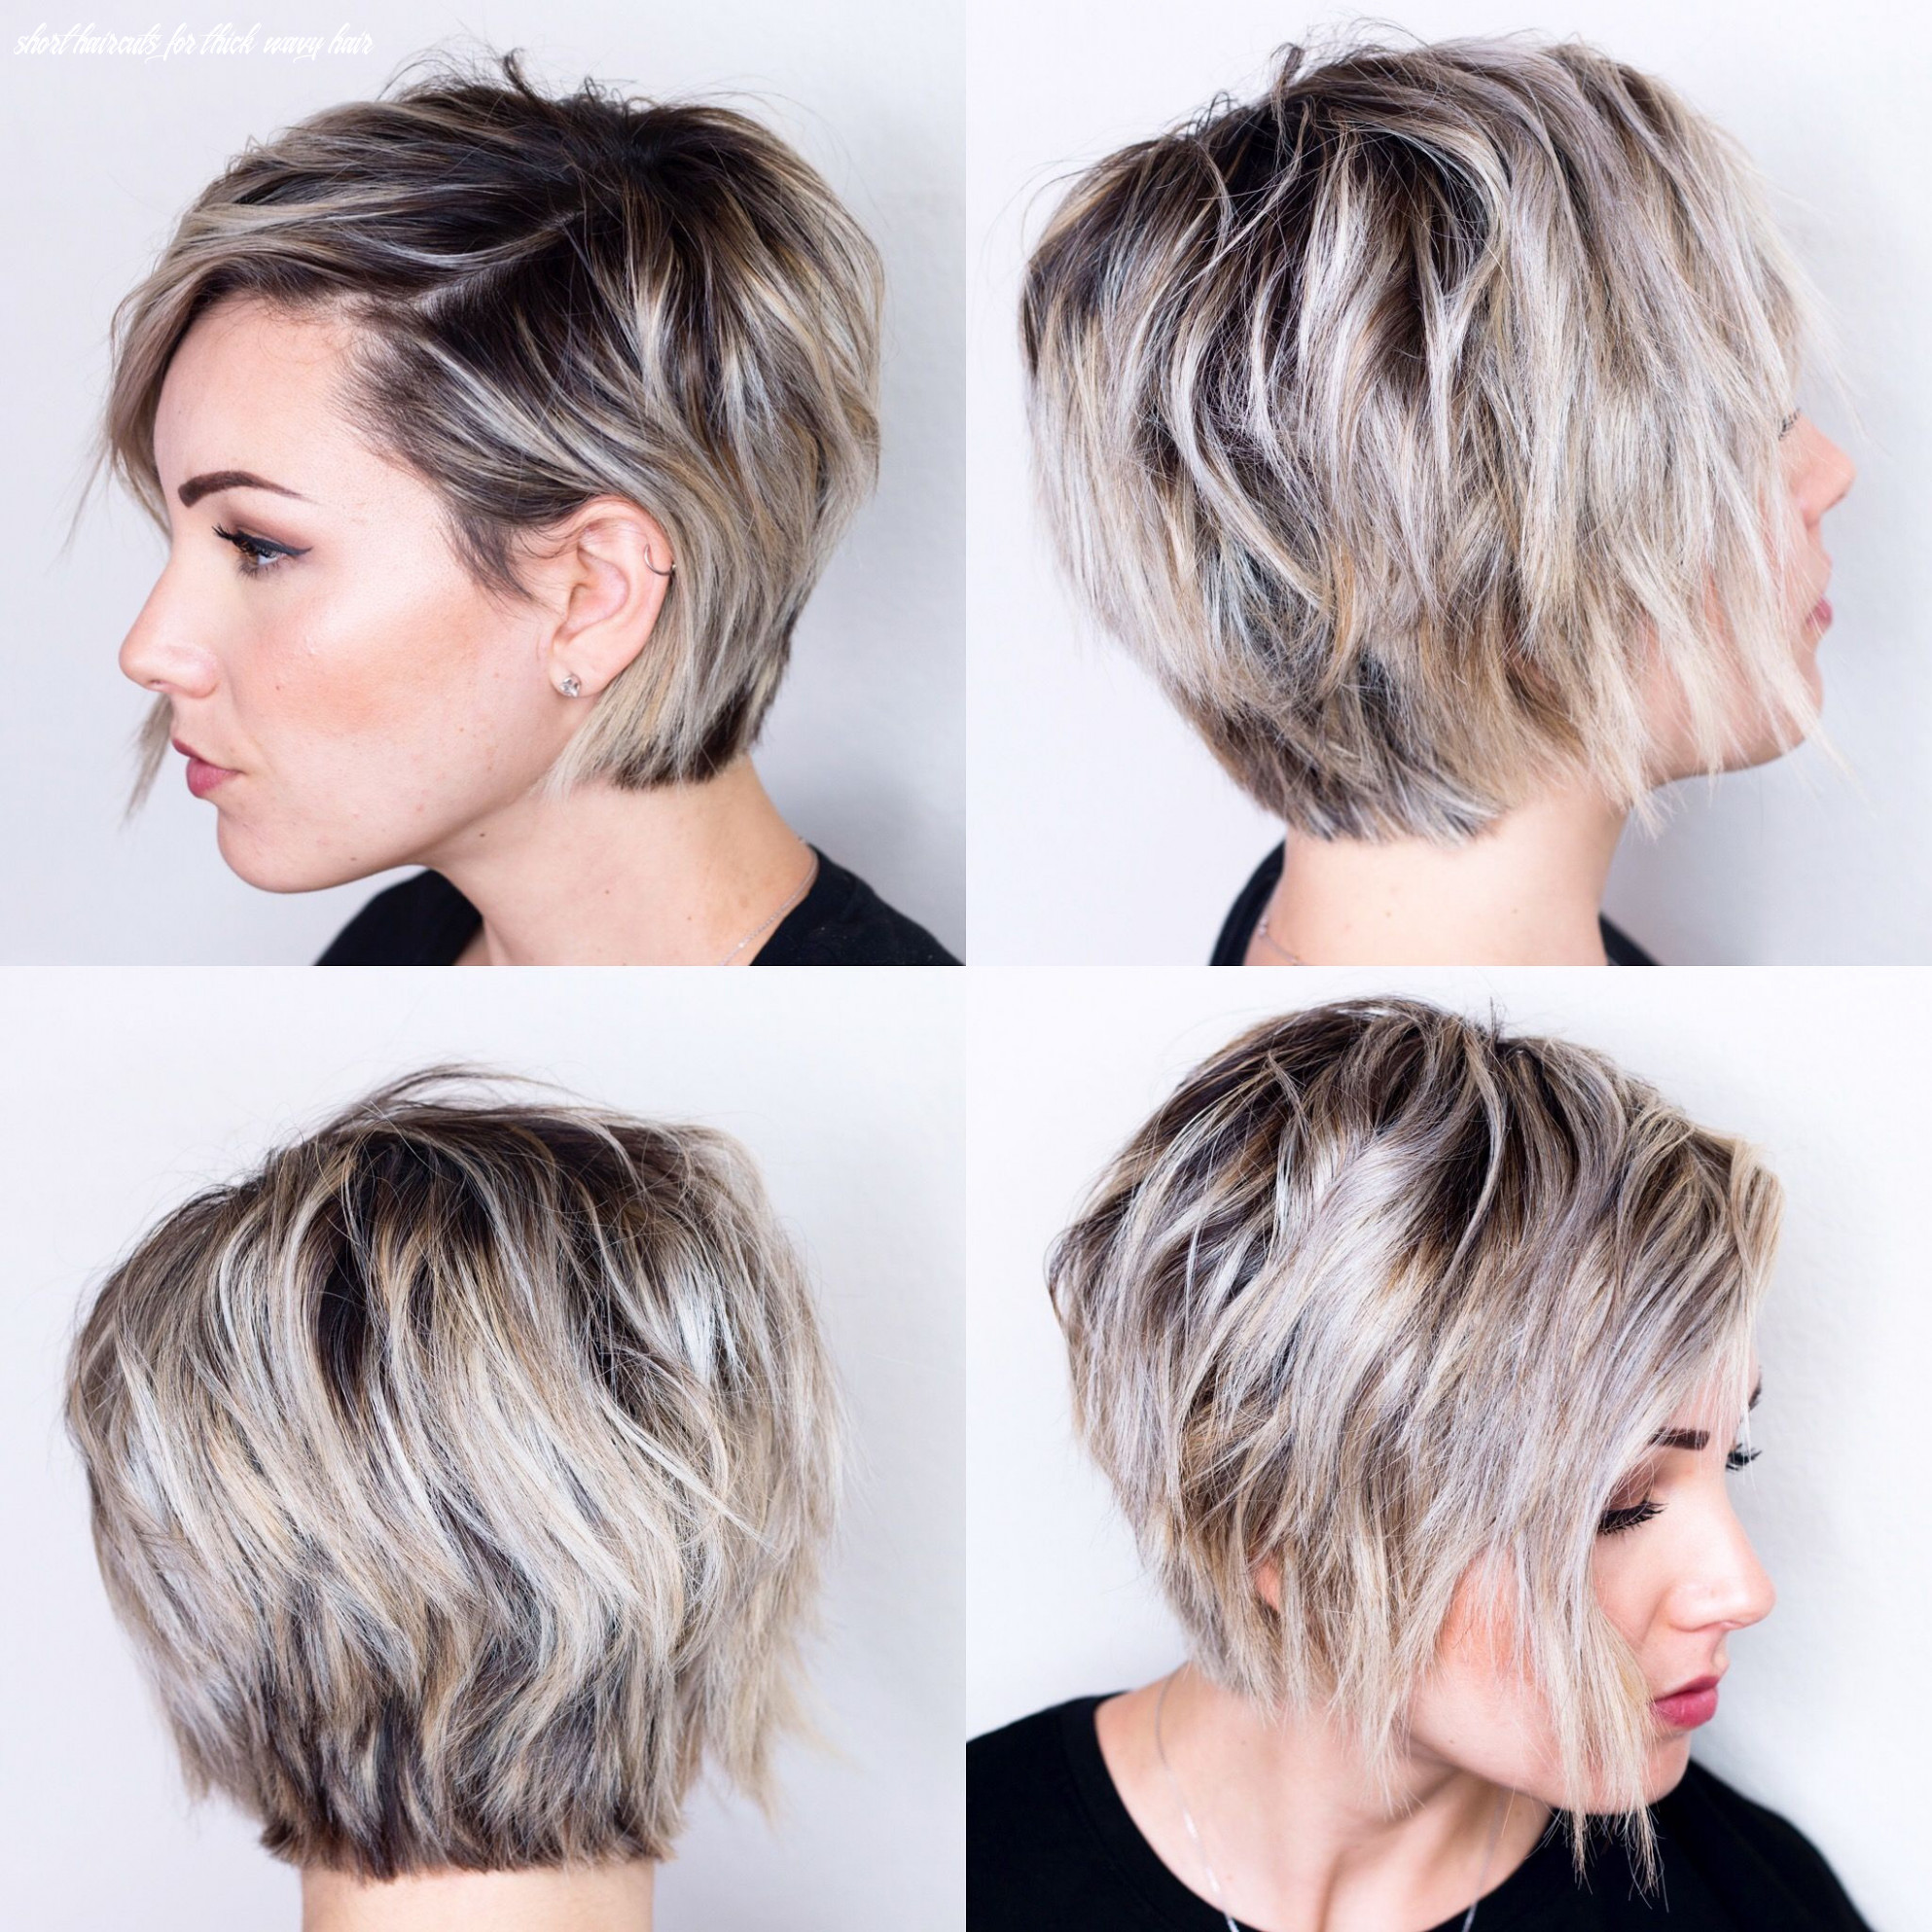 Short Hairstyles for Thick Wavy Hair and Long Face Unique Short ...